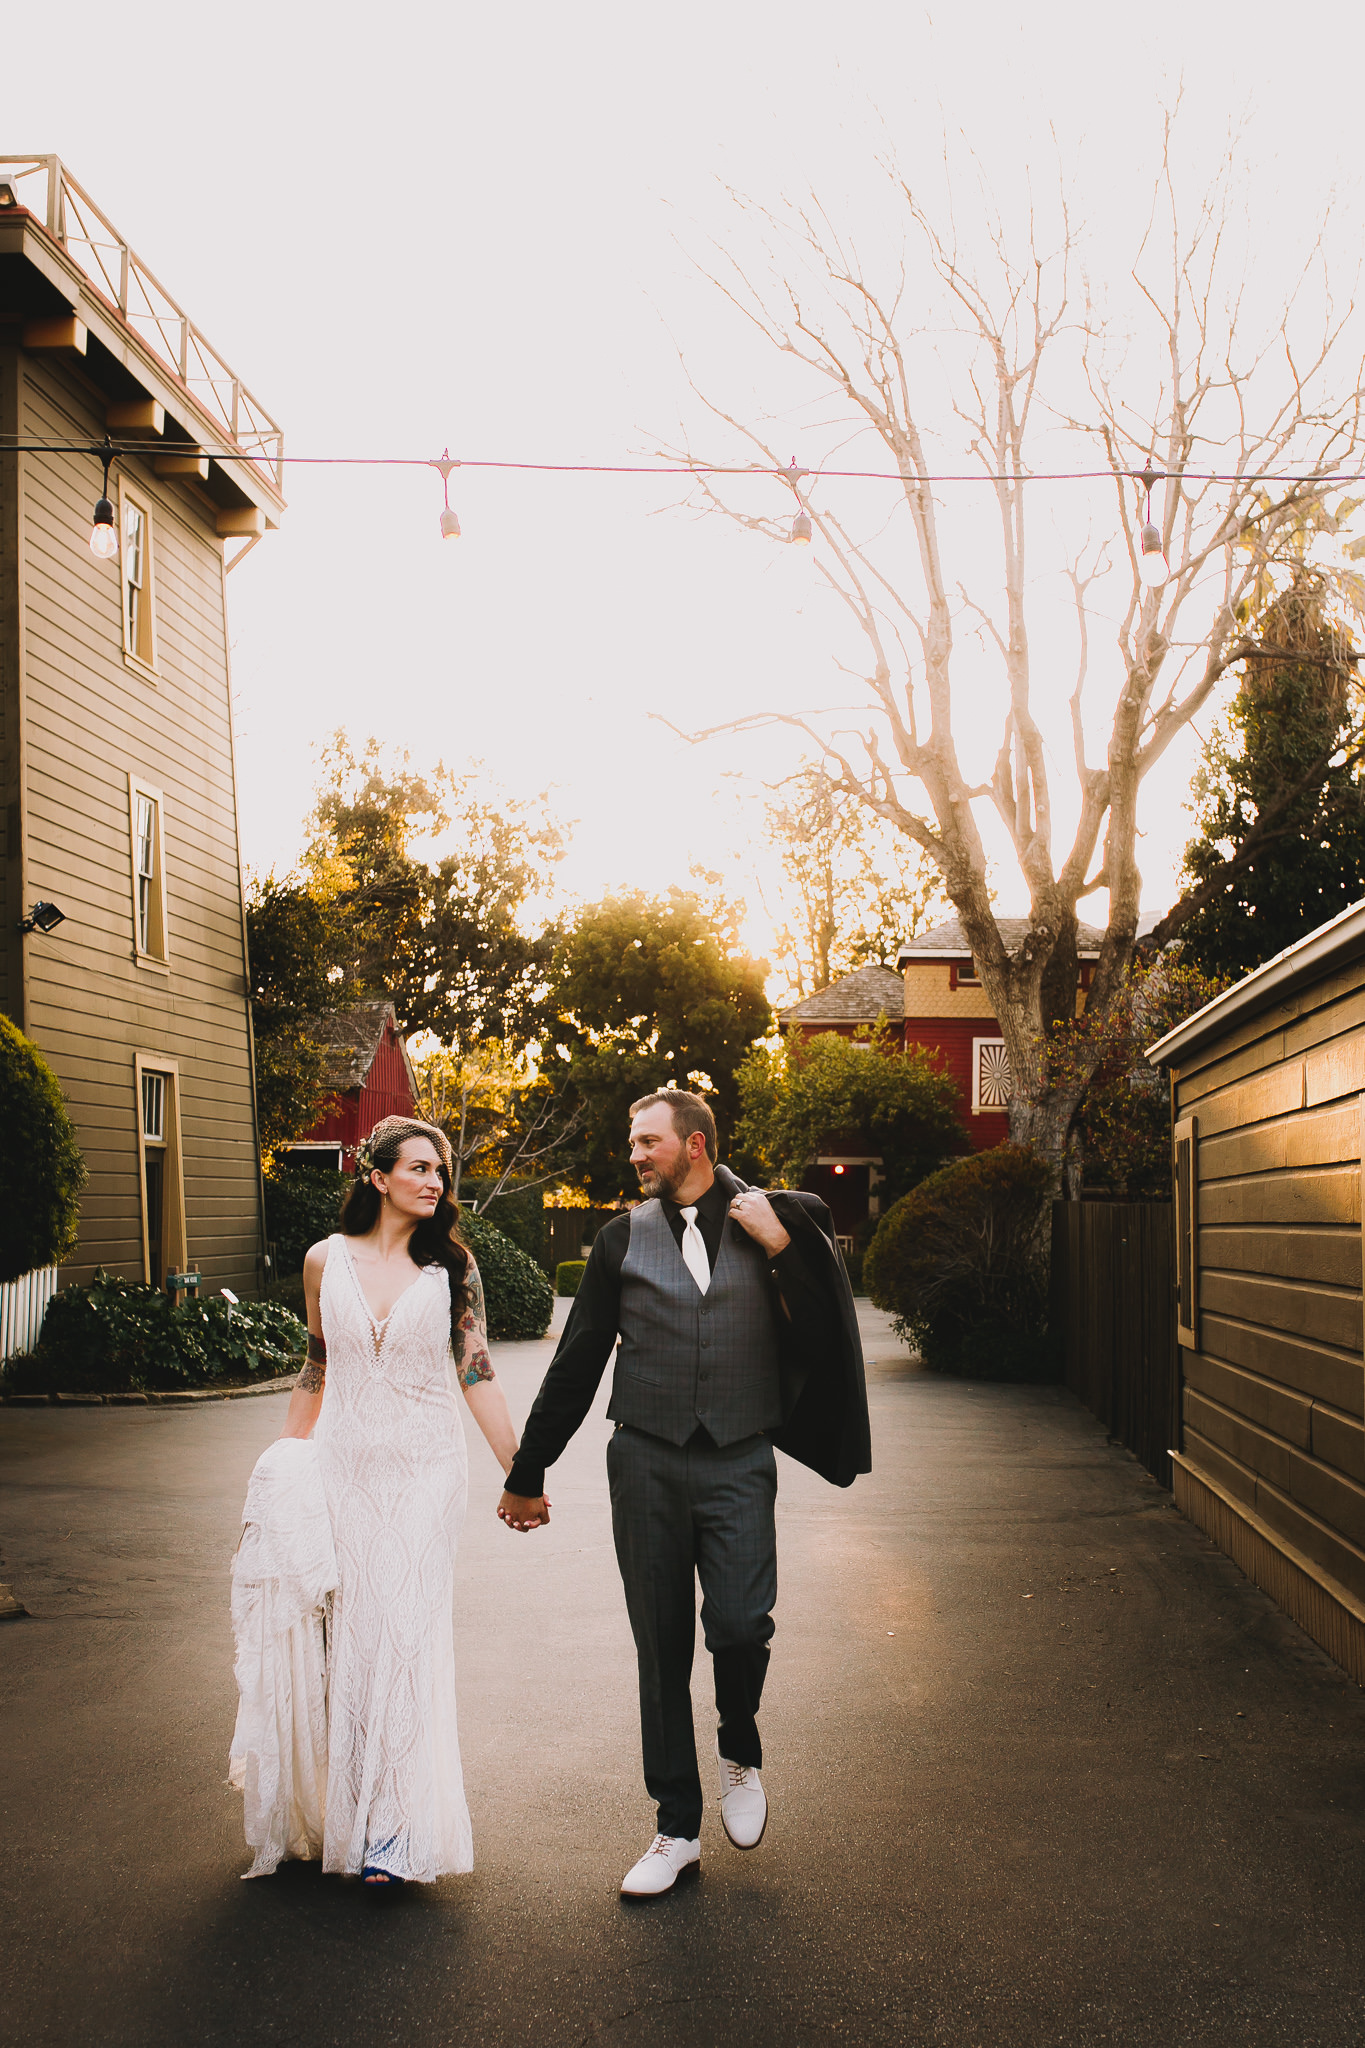 Archer Inspired Photography Sara and Aaron Winchester Mystery House NorCal San Jose California Wedding Photographer-421.jpg